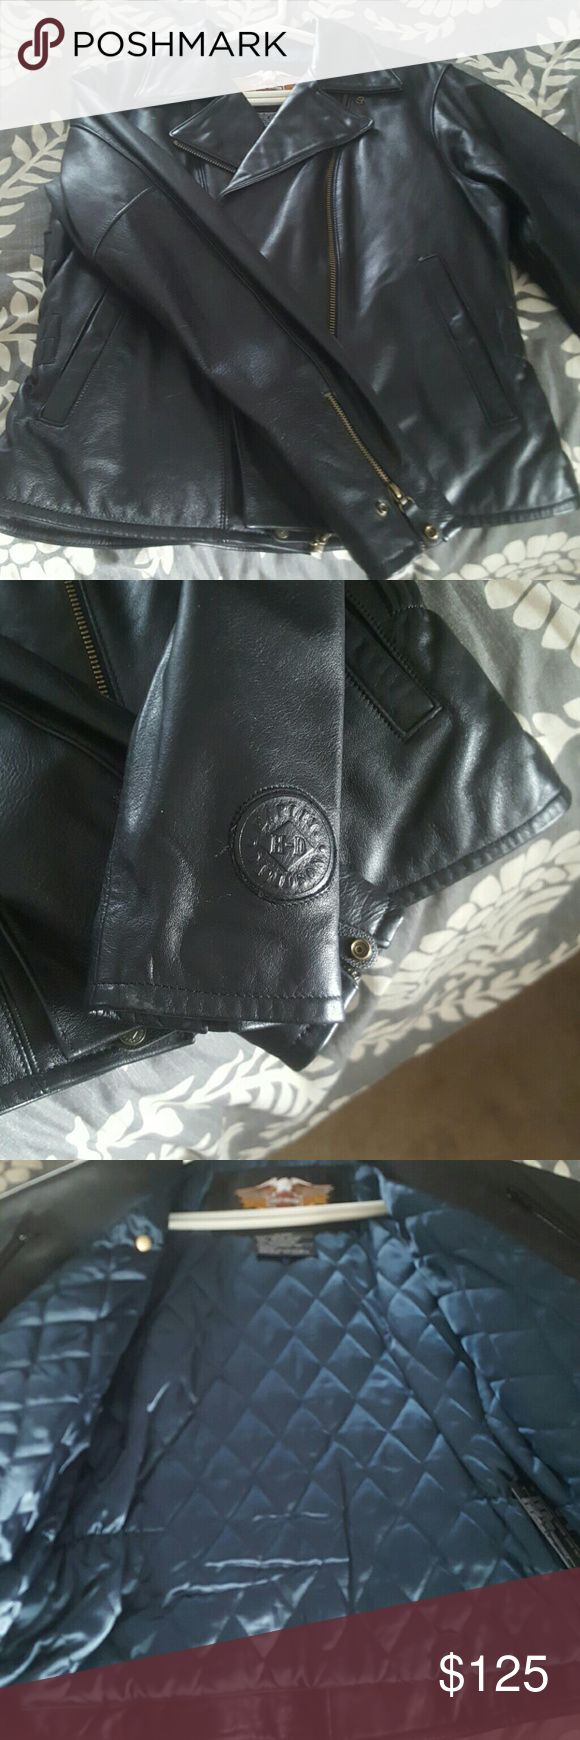 Authentic, genuine leather Harley Davidson jacket. Perfect for Christmas! Awesome detail in this genuine leather, authentic Harley Davidson jacket. Fully lined, two inside pockets, zippered cuffs. Excellent condition. Harley-Davidson Jackets & Coats Utility Jackets